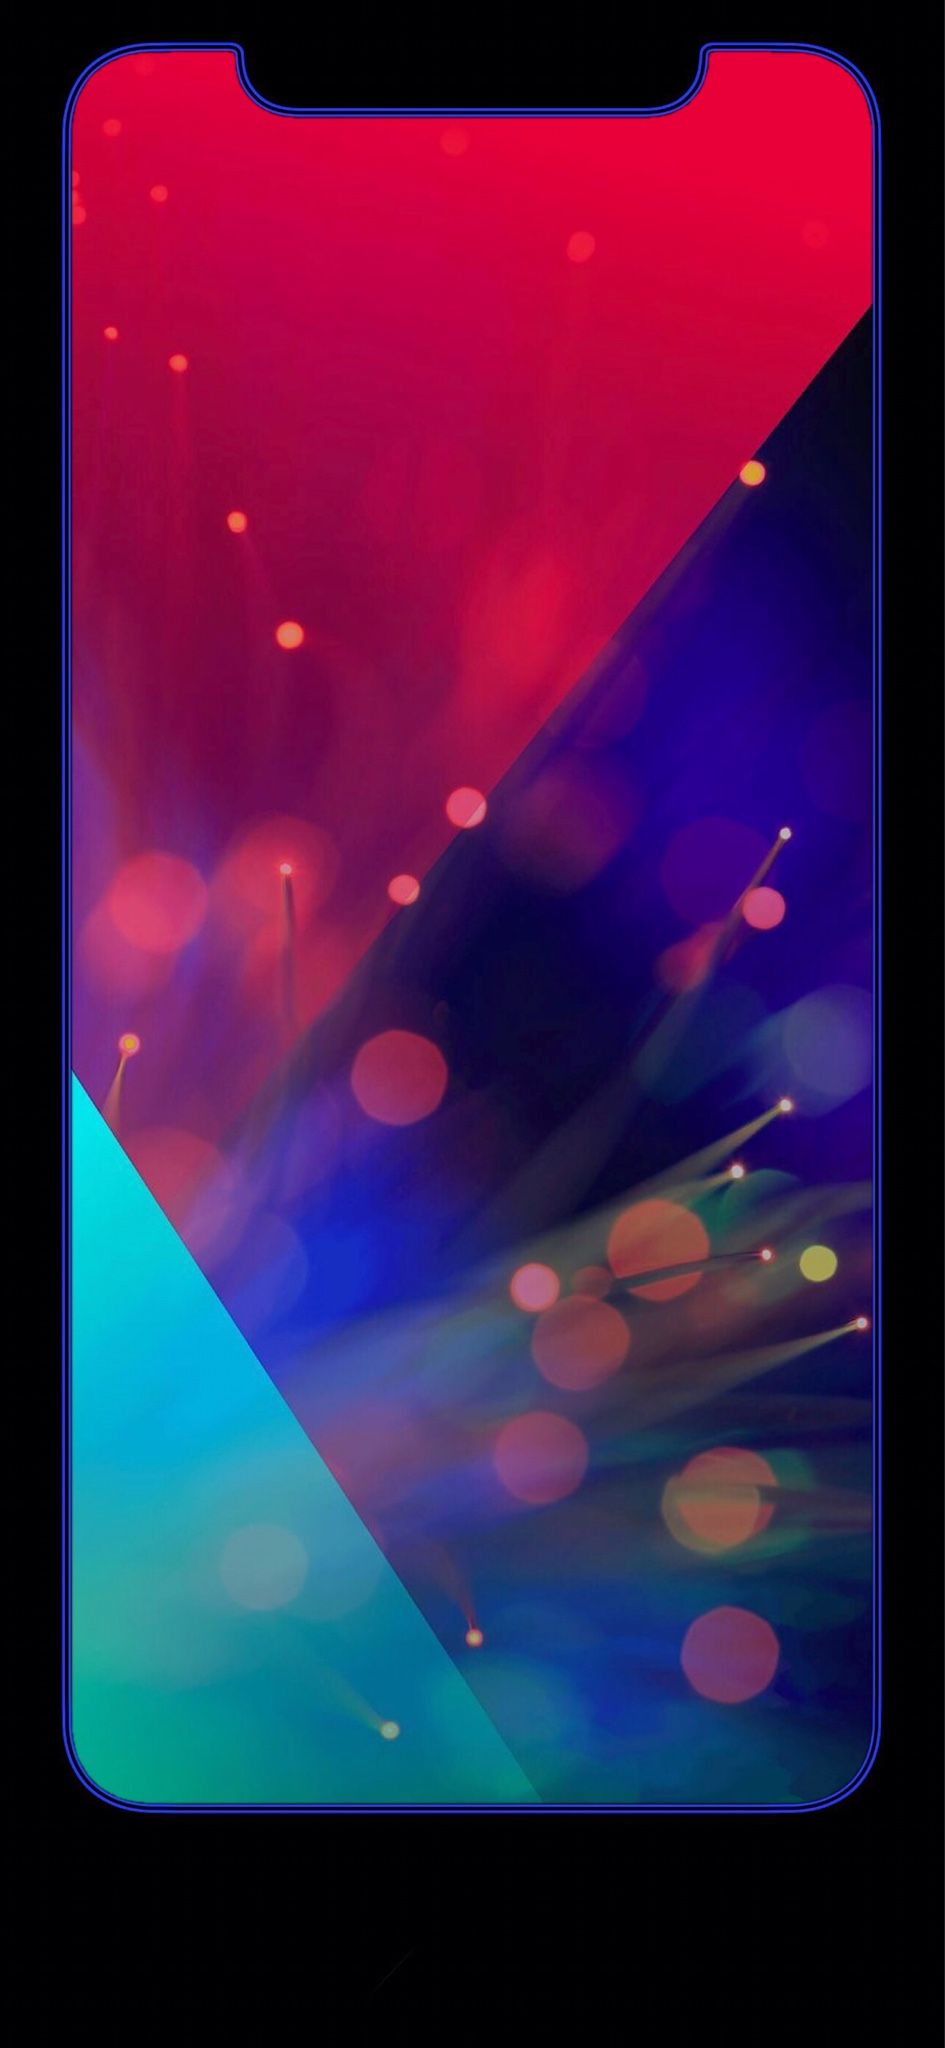 The iPhone X/Xs Wallpaper Thread Page 38 iPhone, iPad